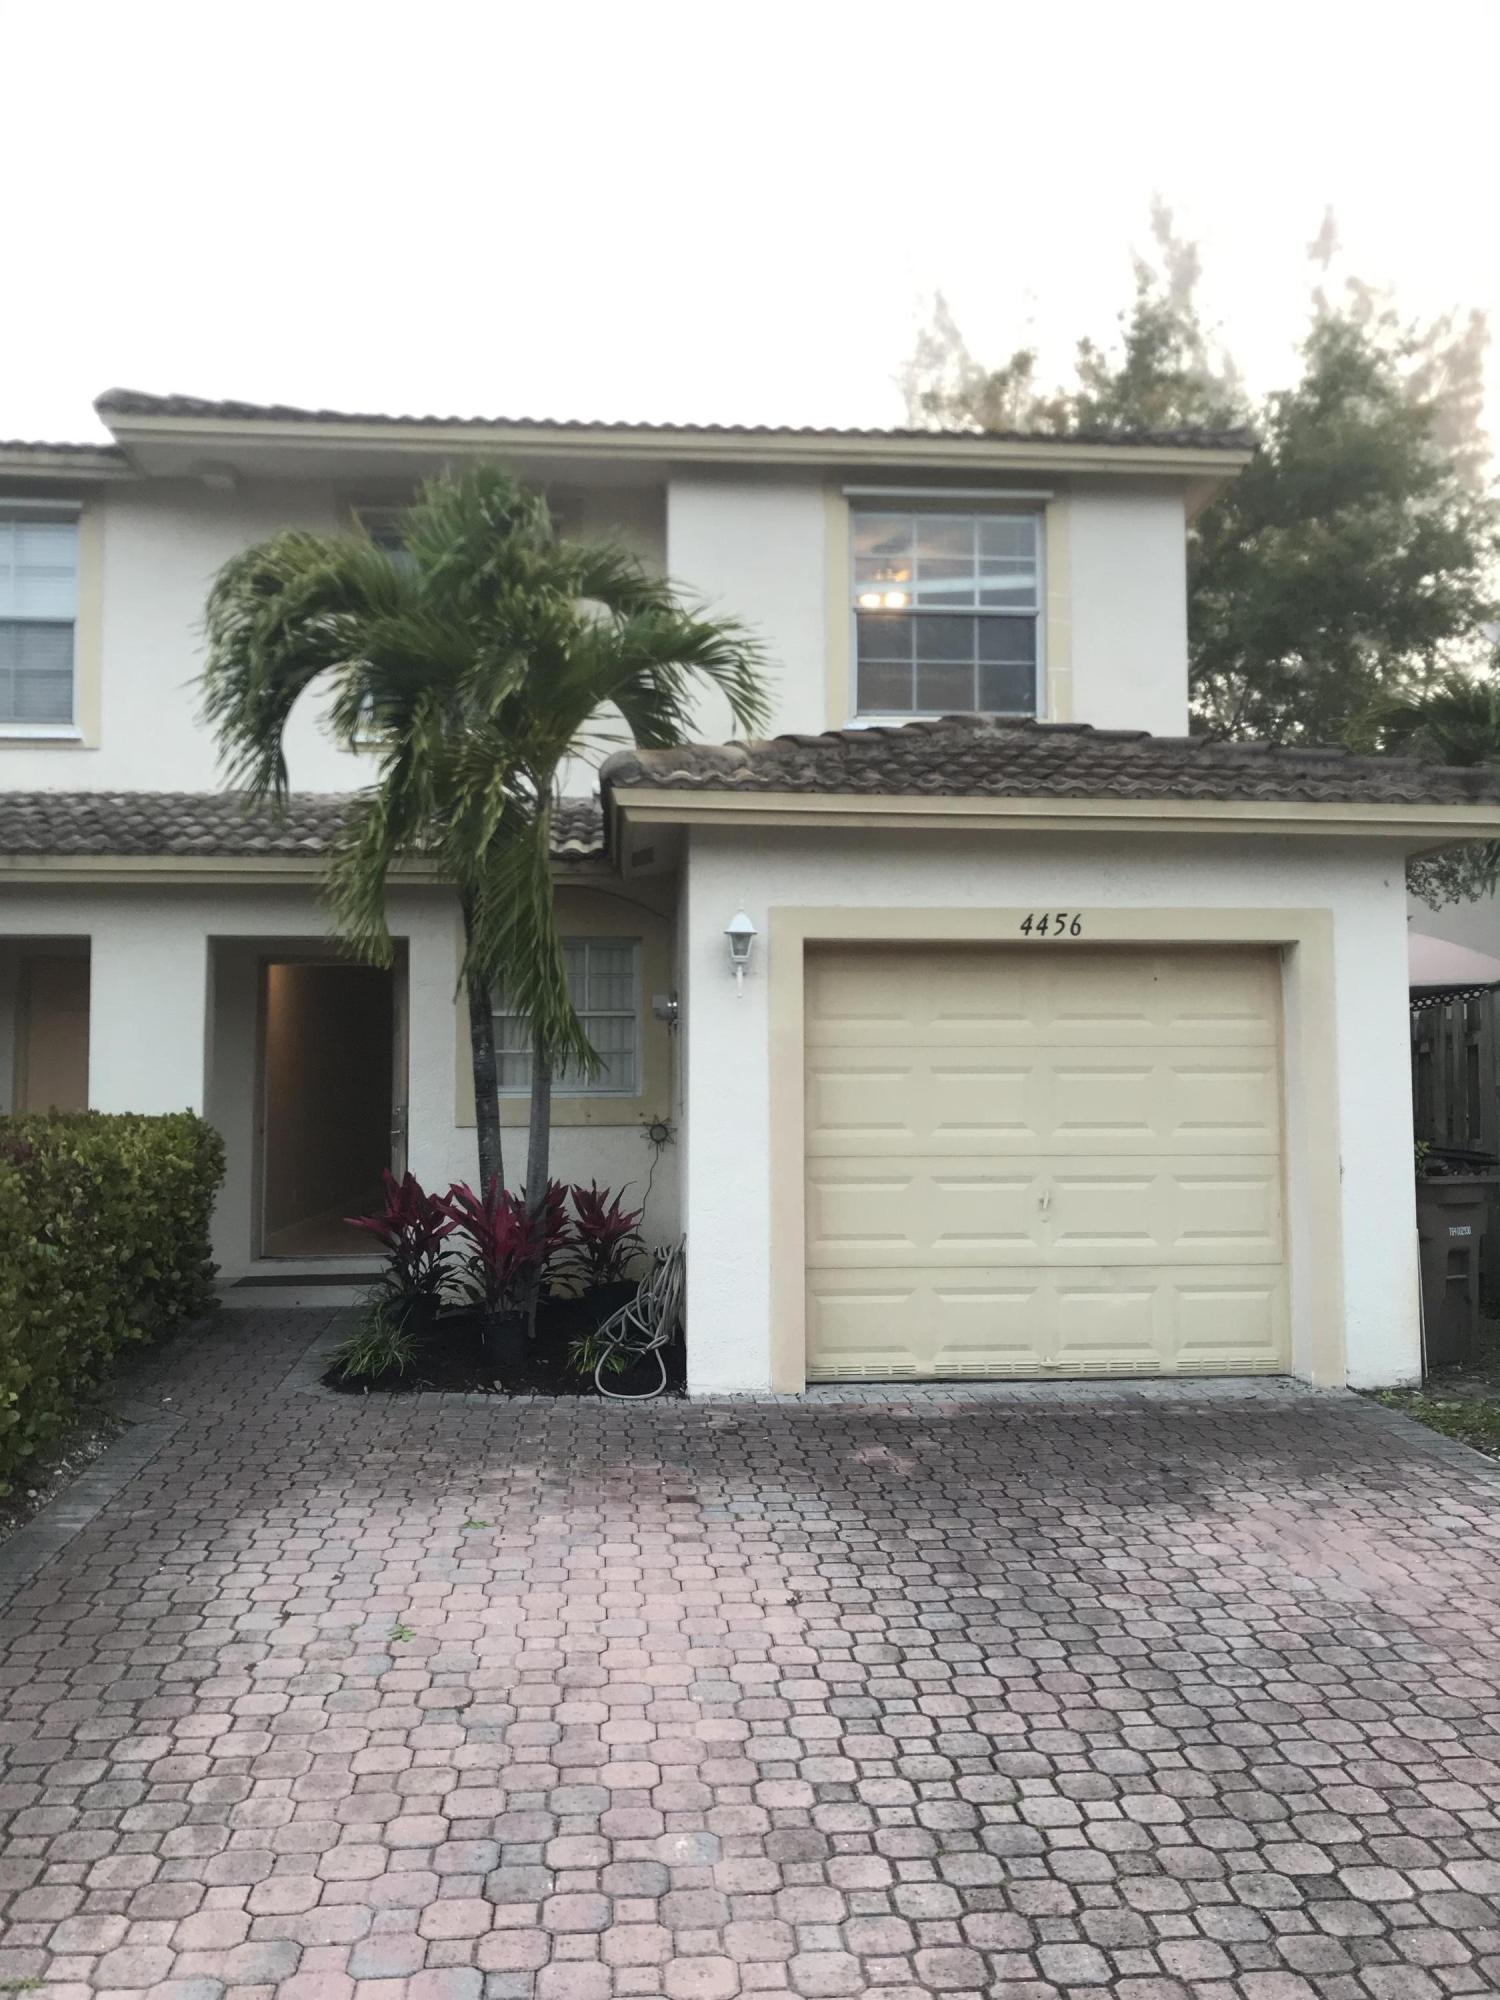 Home for sale in Crystal Pointe Townhomes Pompano Beach Florida